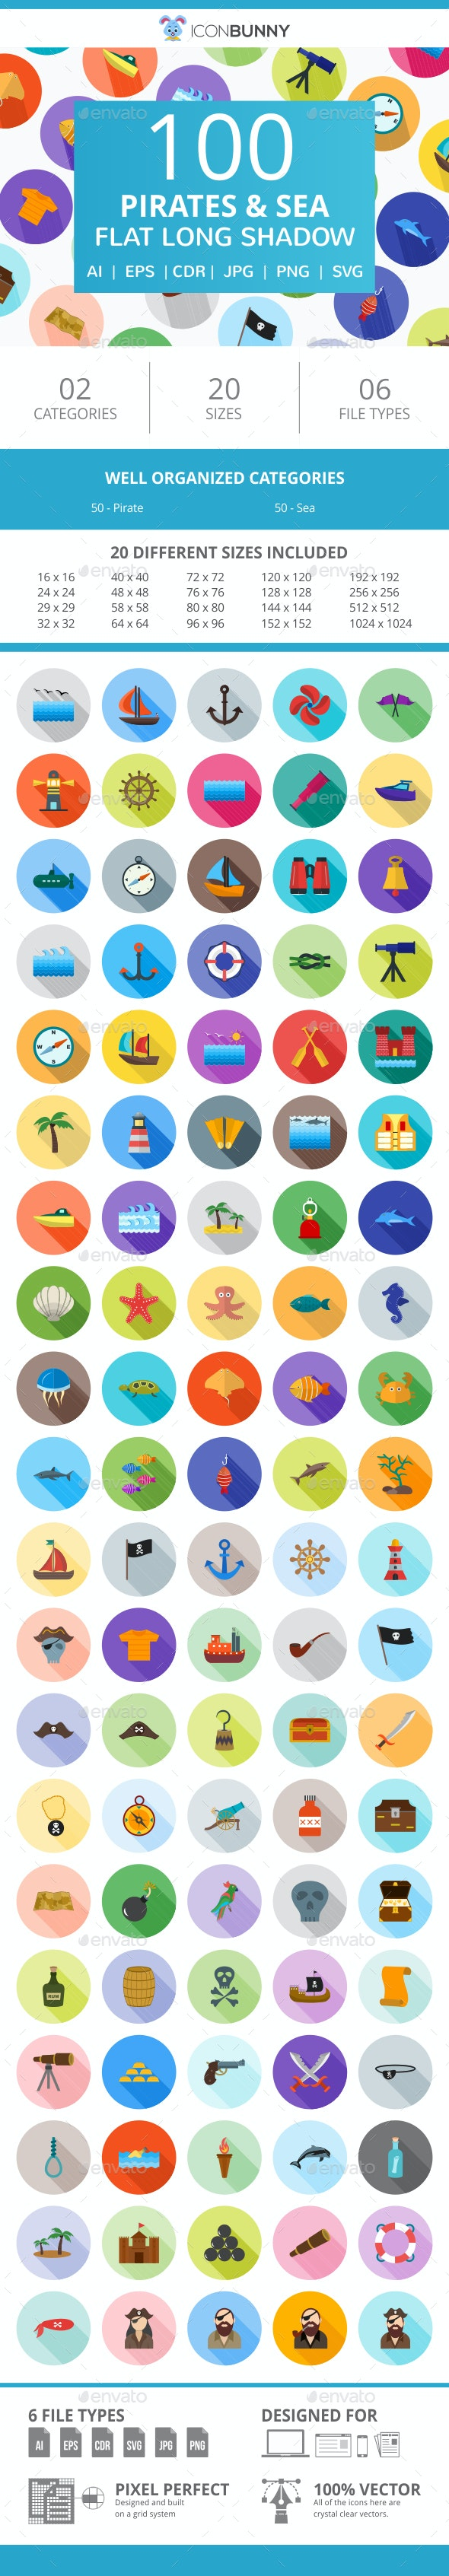 100 Pirate & Sea Flat Long Shadow Icons - Icons